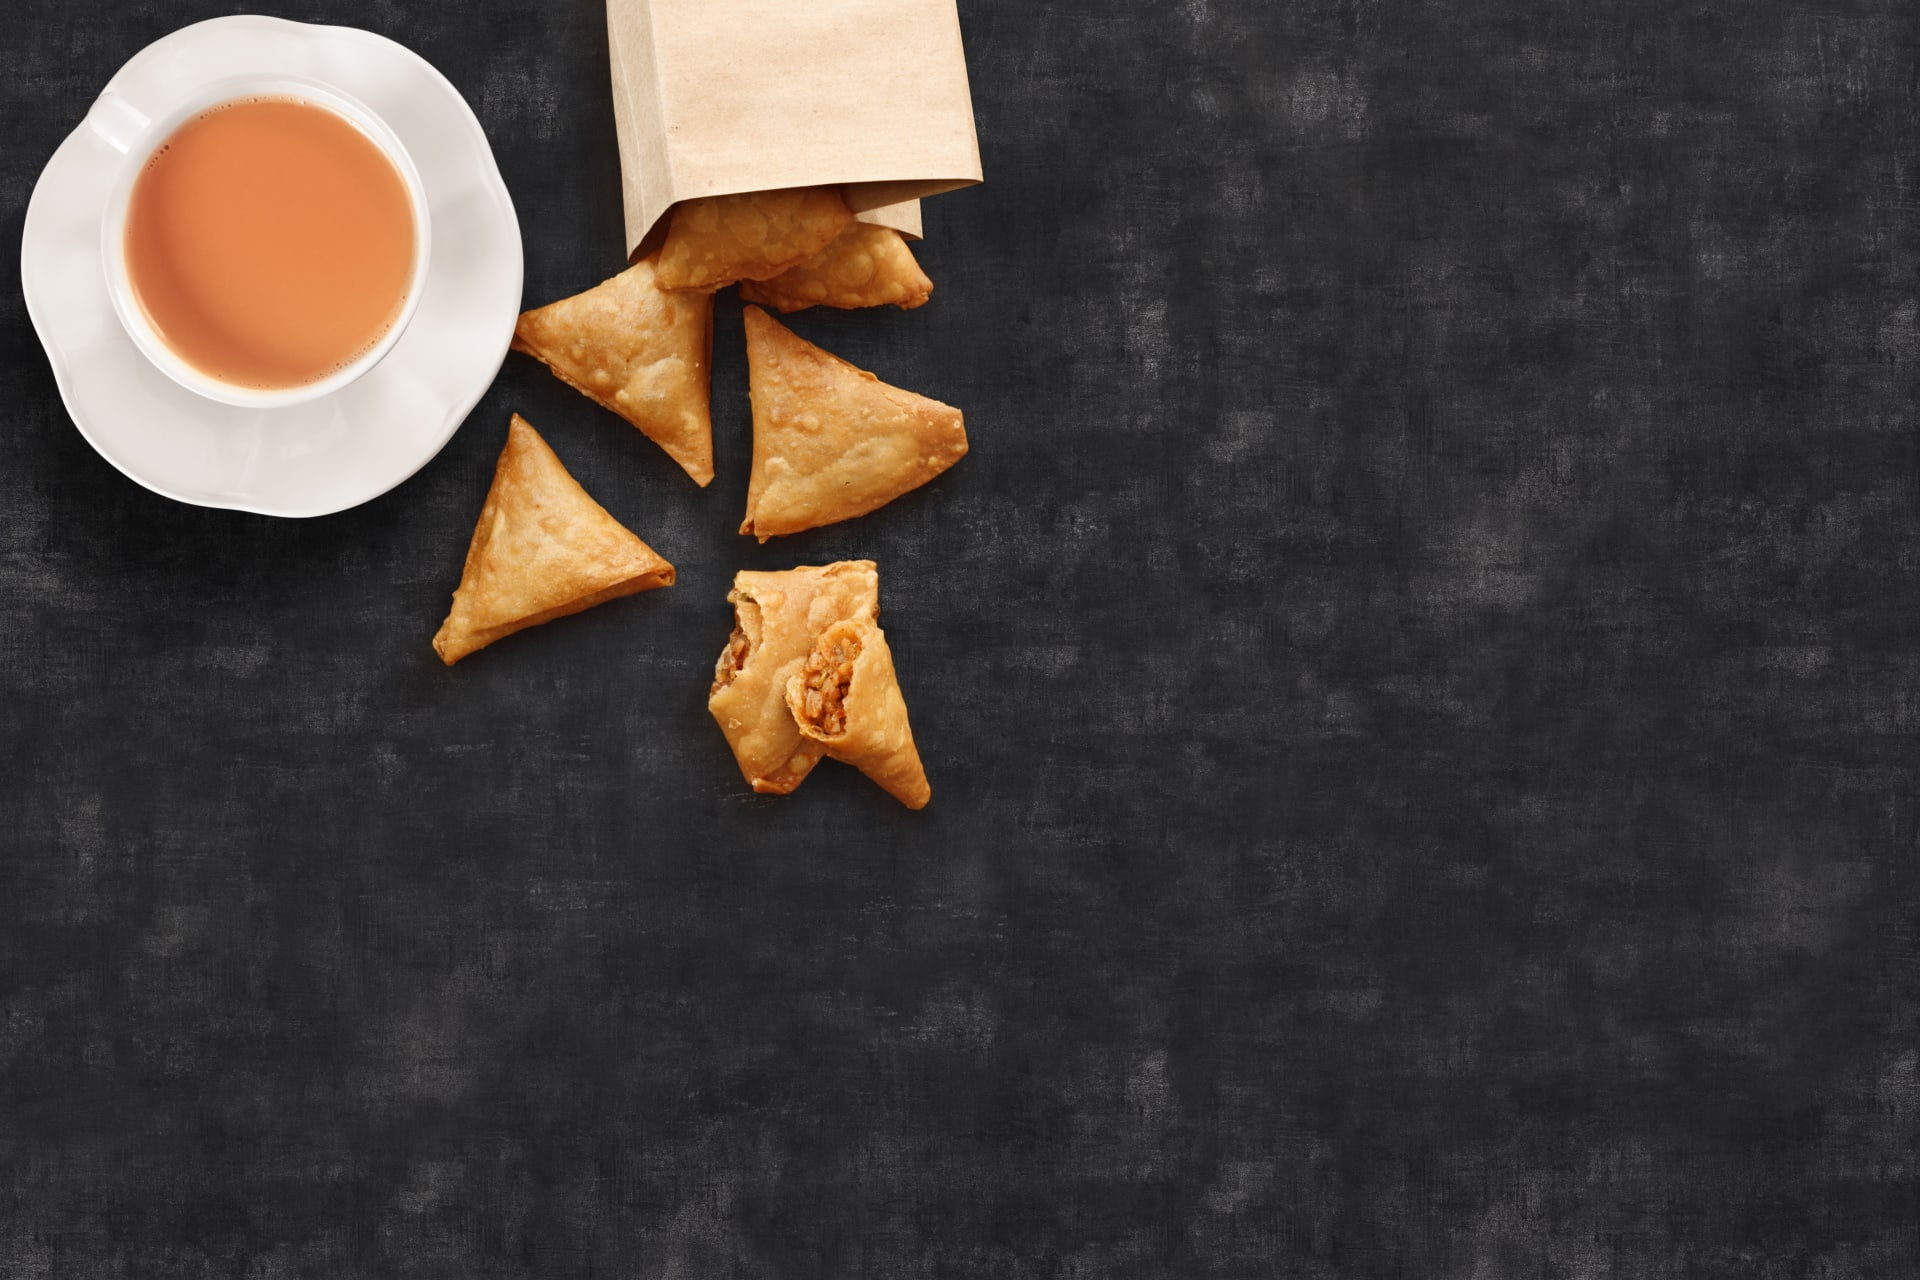 Nairobi - Swahili Snack Time - Transport your Kitchen and your Tastebuds to the Kenyan Coast.